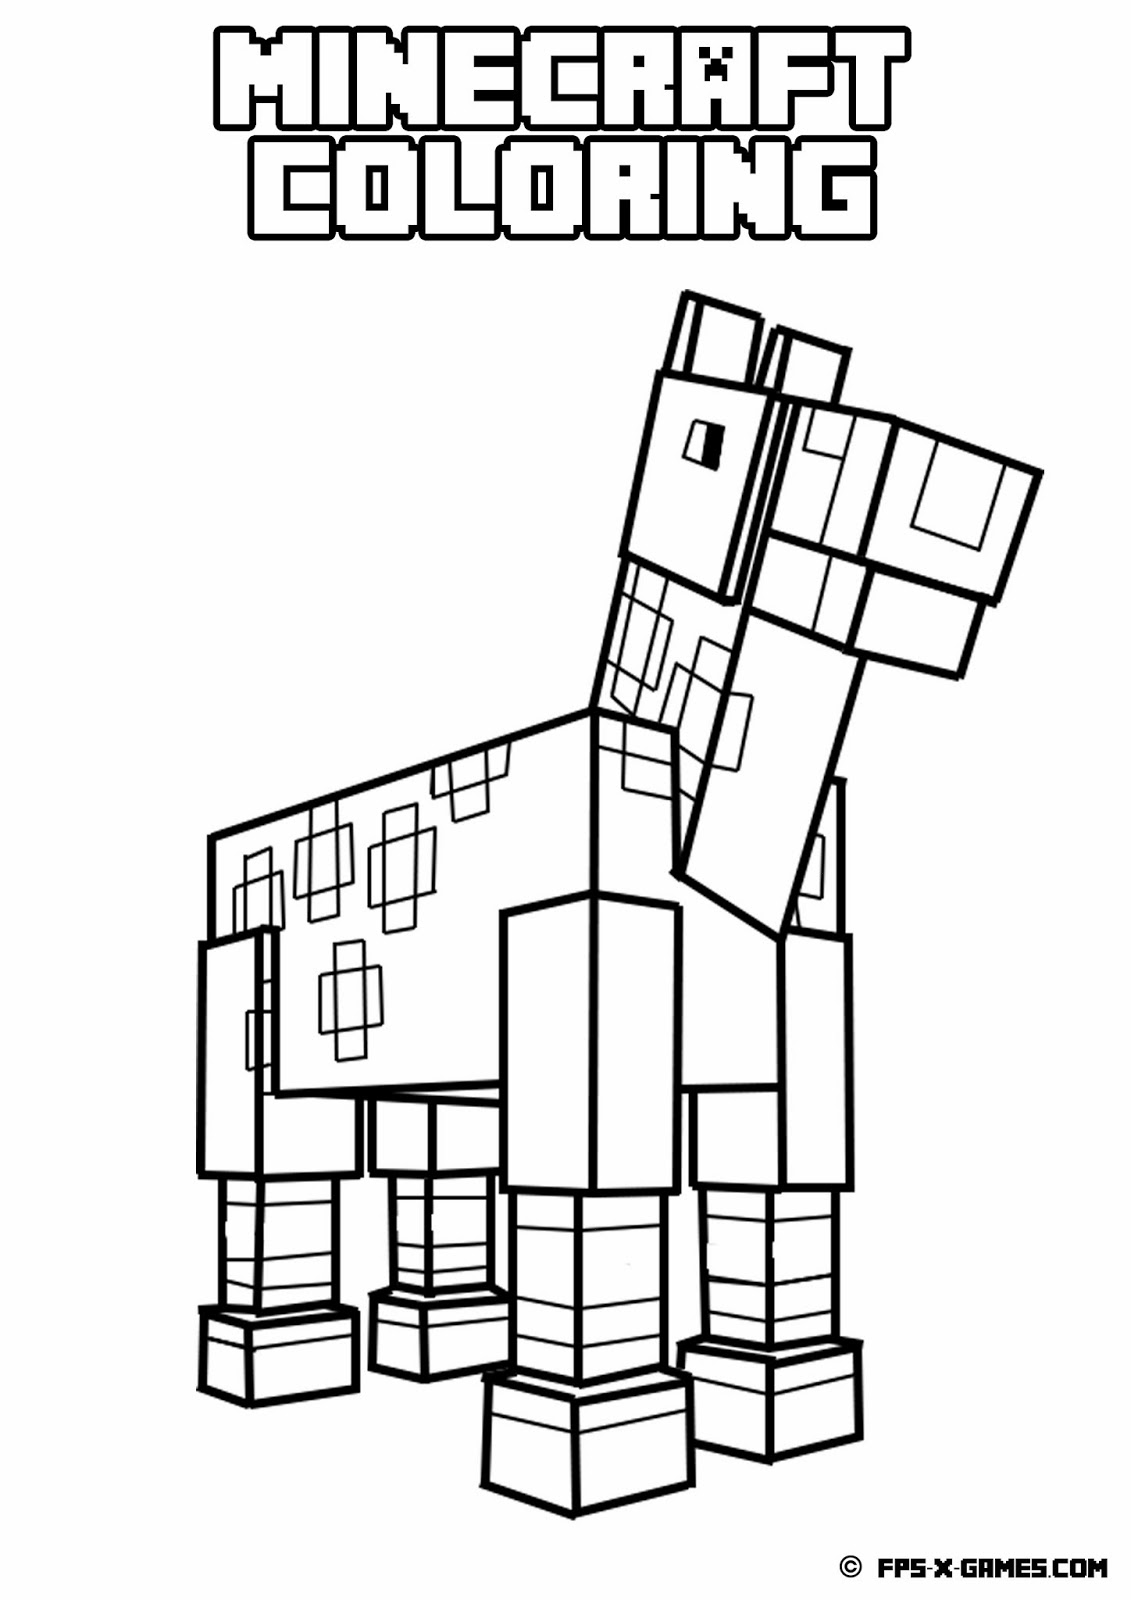 mine craft coloring pages minecraft coloring pages best coloring pages for kids coloring mine craft pages